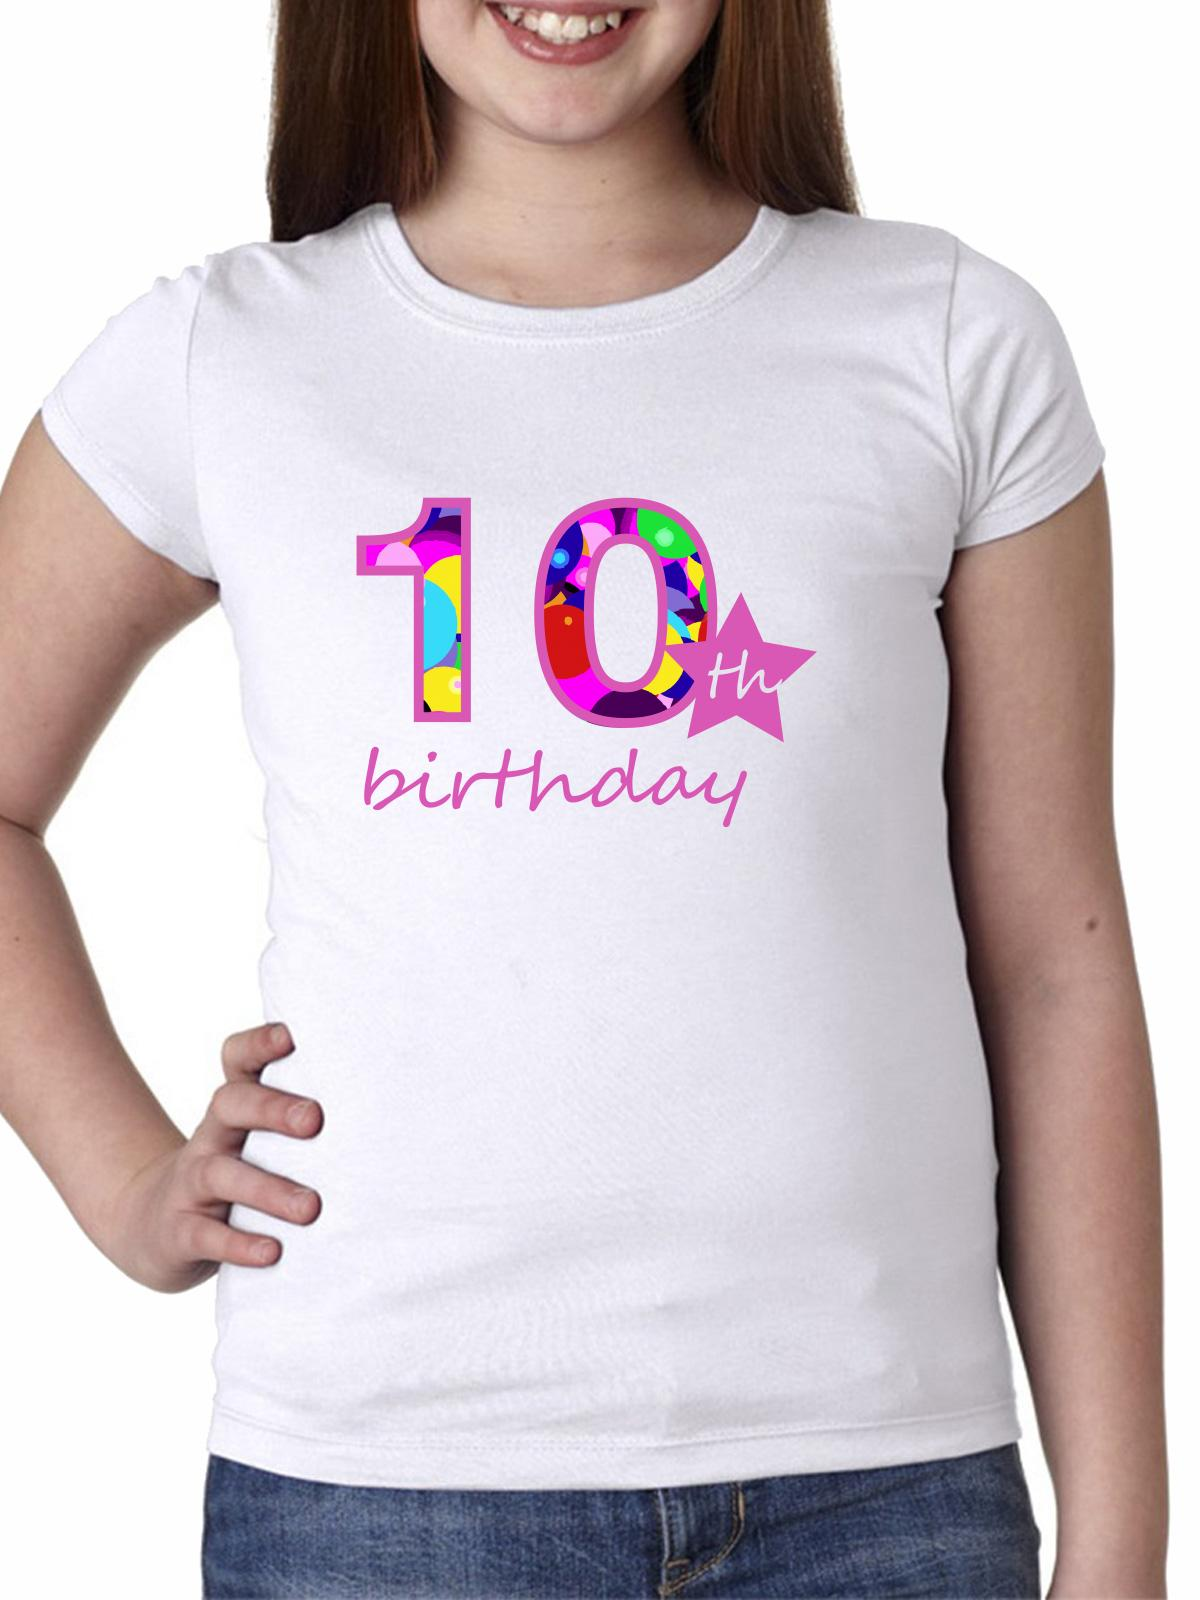 10th Birthday - Large Pink Ten Star - Gift Girl's Cotton Youth T-Shirt